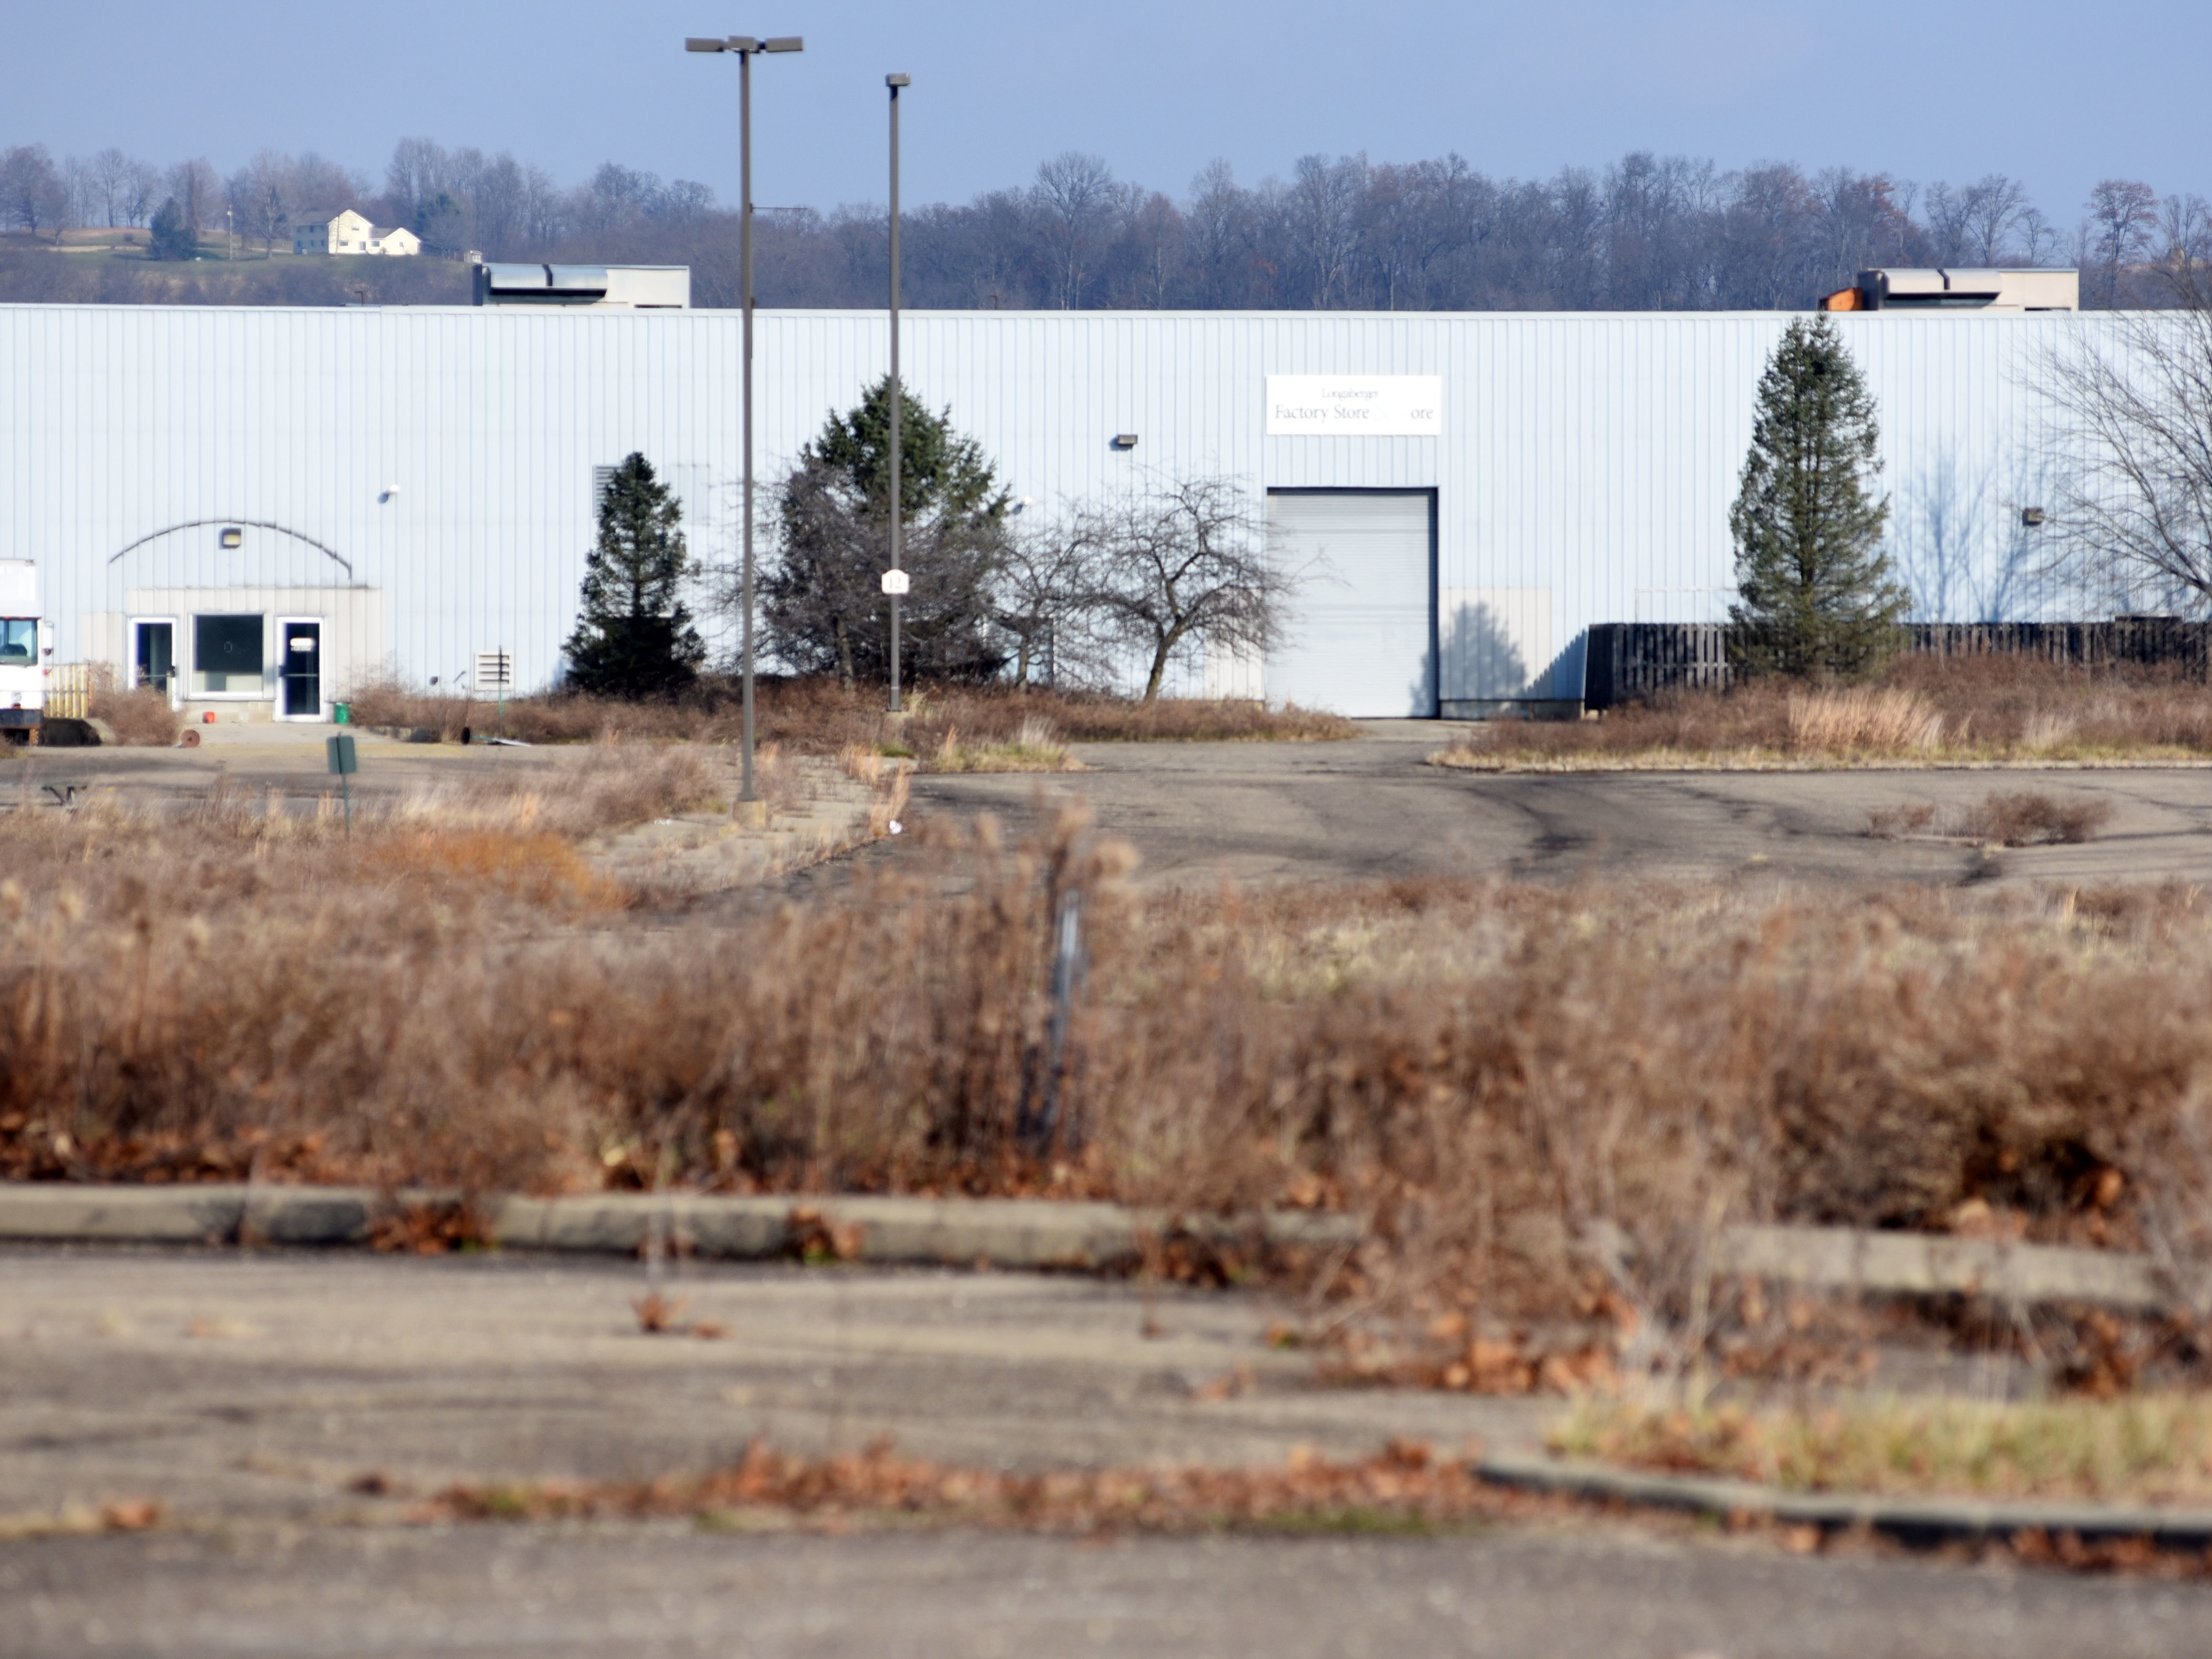 A weedy parking lot stands next to one of the Longaberger buildings recently sold to MPI Group, a mattress manufacturer.